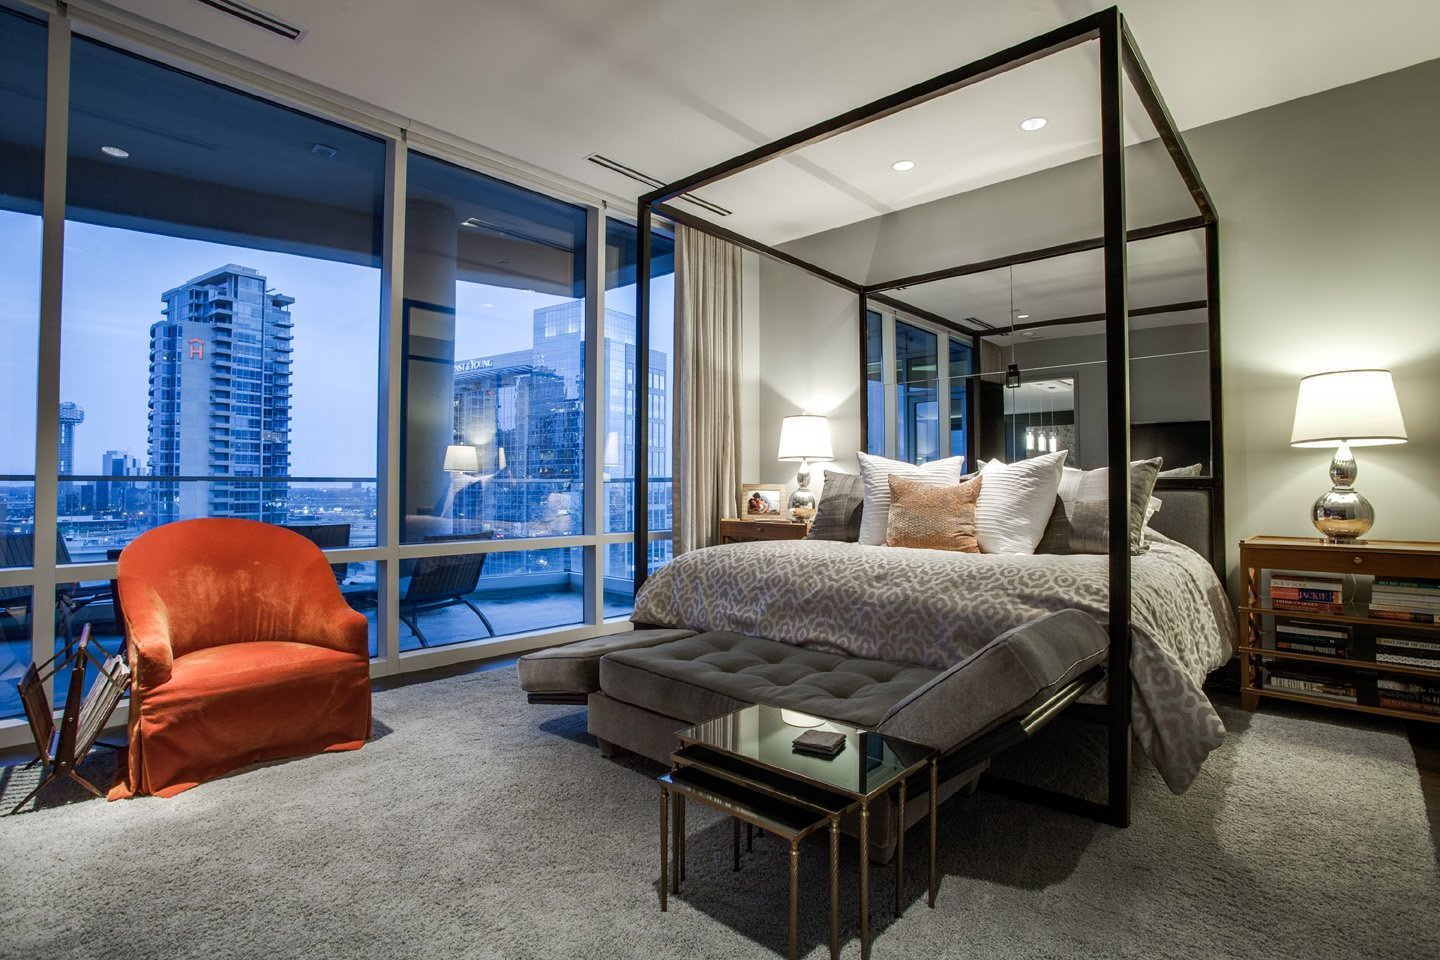 5 Beds That Make a Statement